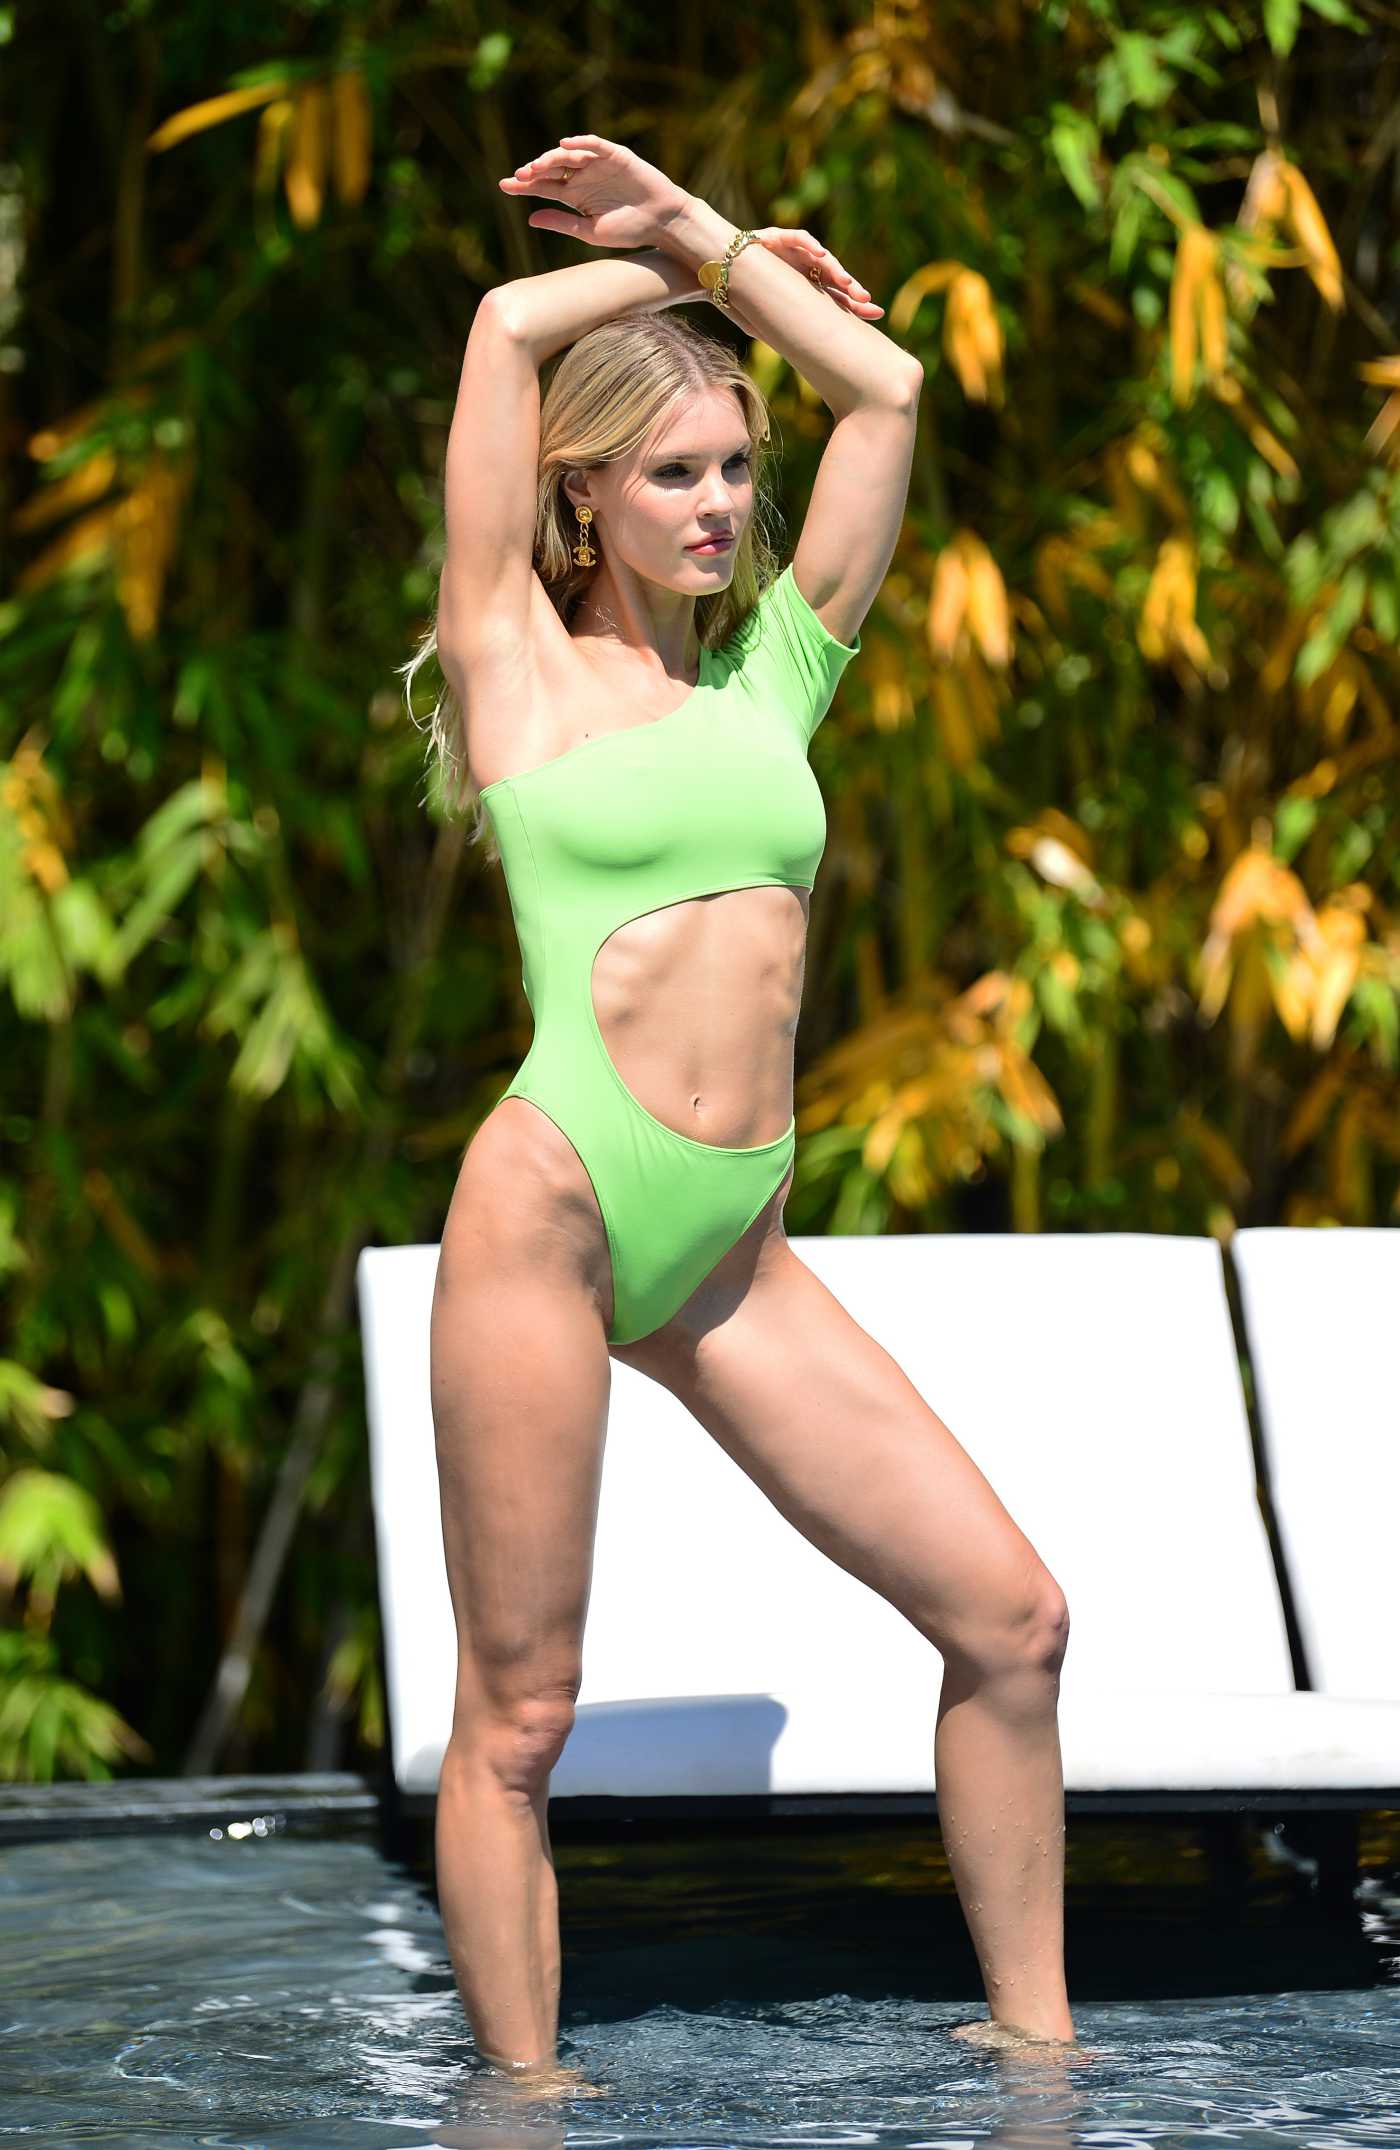 Joy Corrigan in a Neon Green Swimsuit Does a Photo Session at the Alo House in Los Angeles 06/28/2021